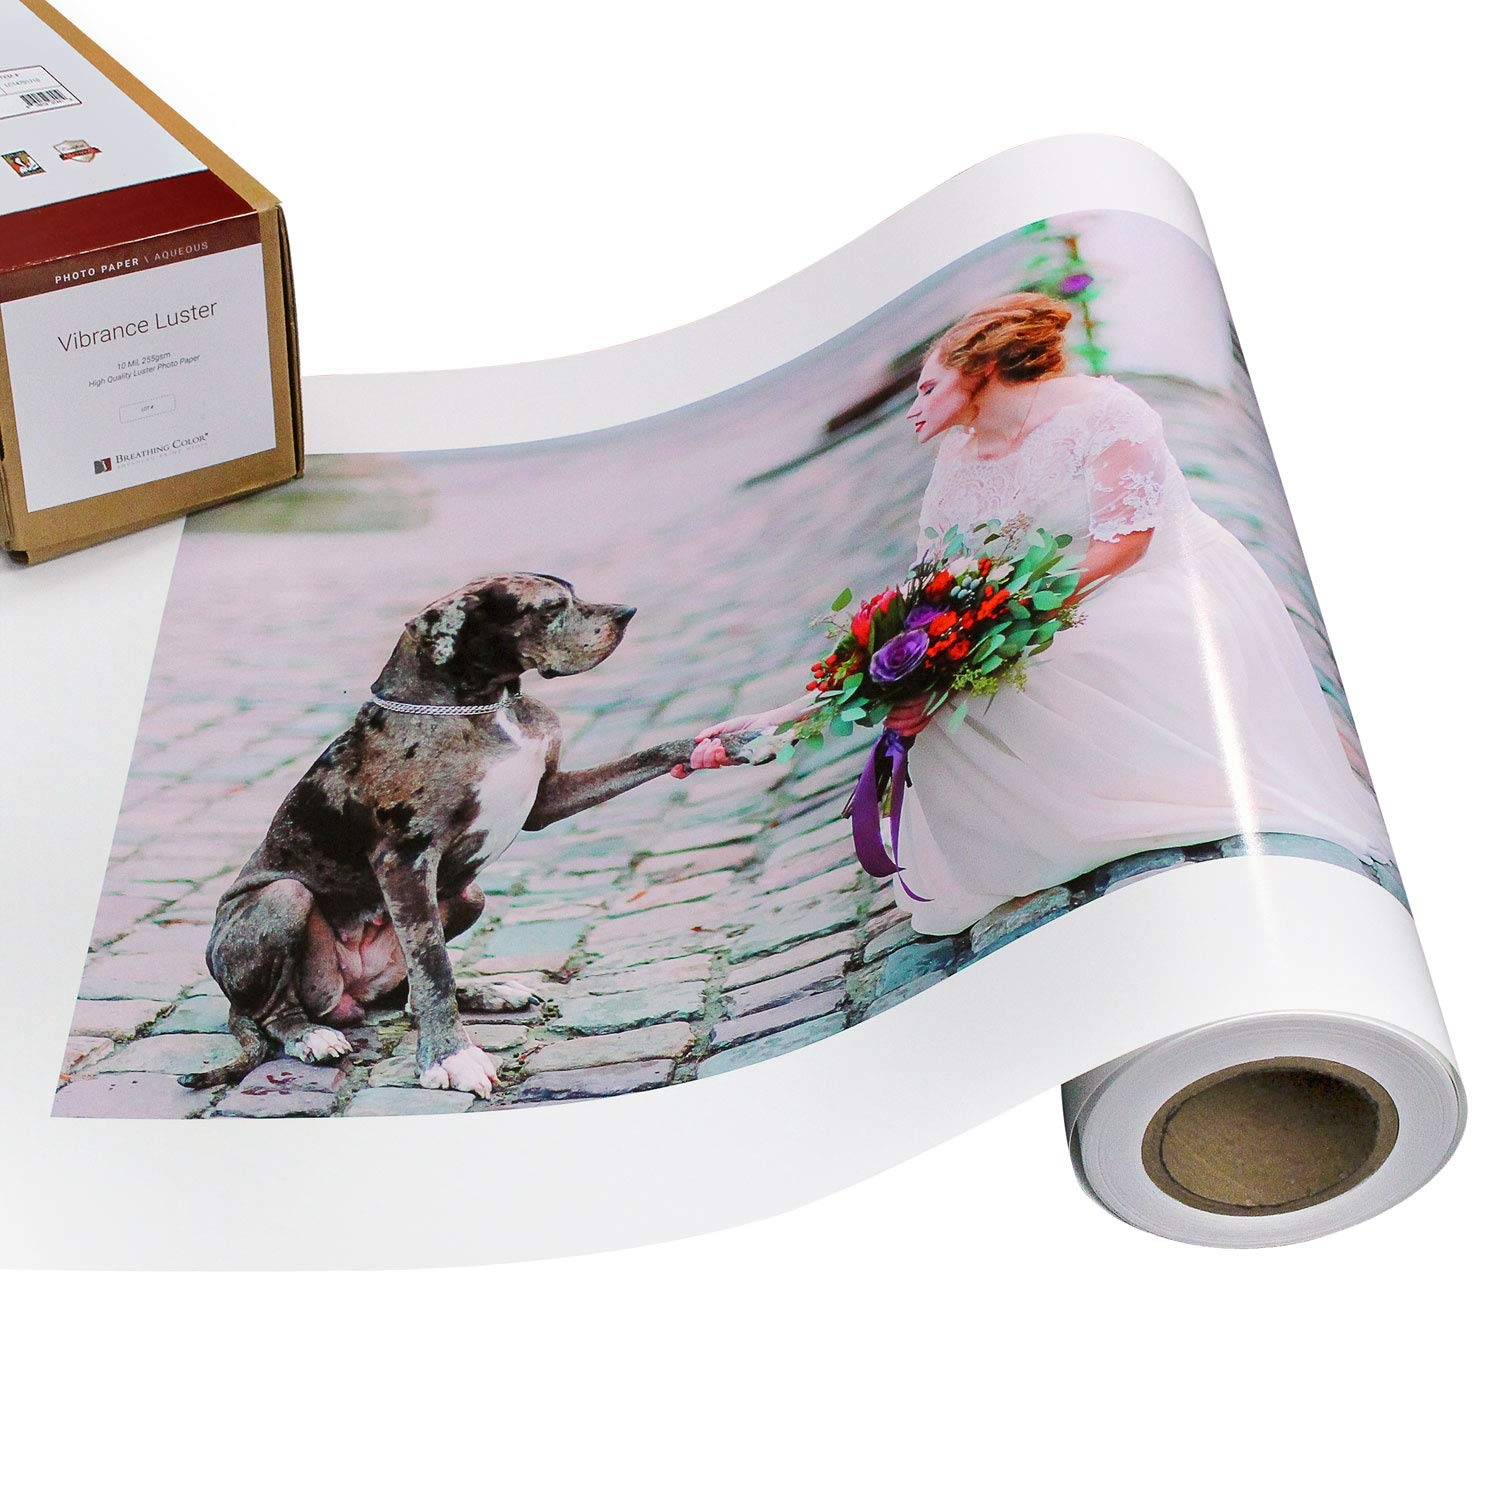 Vibrance Luster Photo Printer Paper 10 mil 255 gsm Luster Finish Premium Photo Paper Roll 24 inches x 100 feet Works with All Inkjet Printers Including Professional Makes and Models